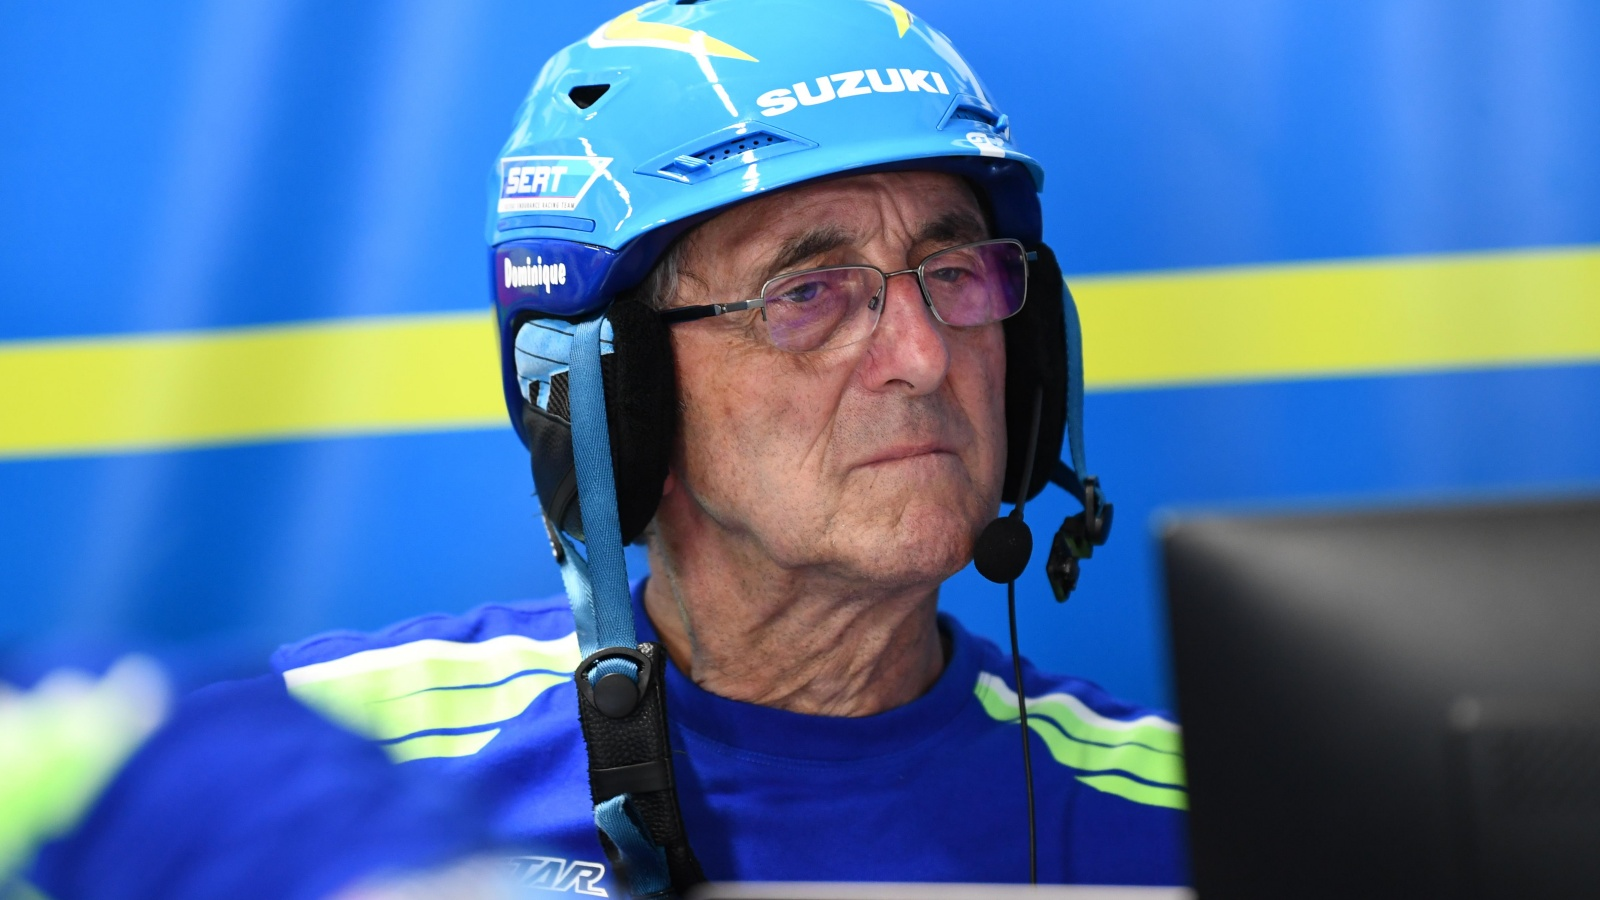 Suzuki Endurance Racing Team y Dominique Meliand, cuando el final es irrelevante